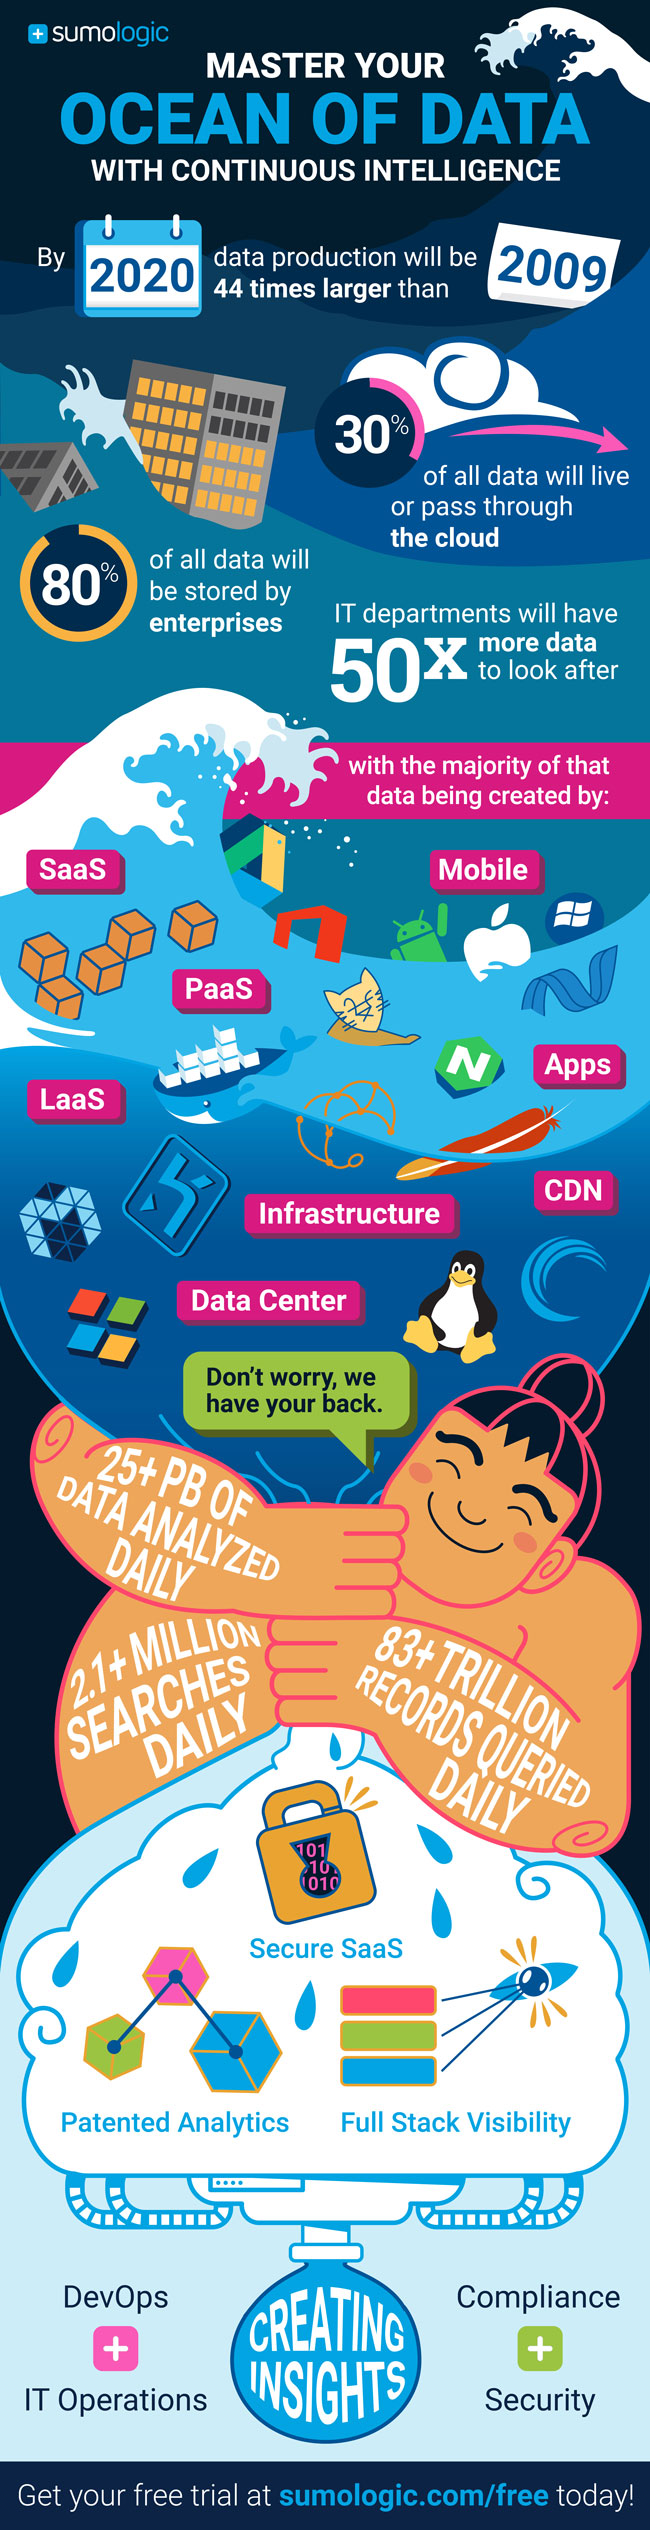 Ocean of Data Infographic